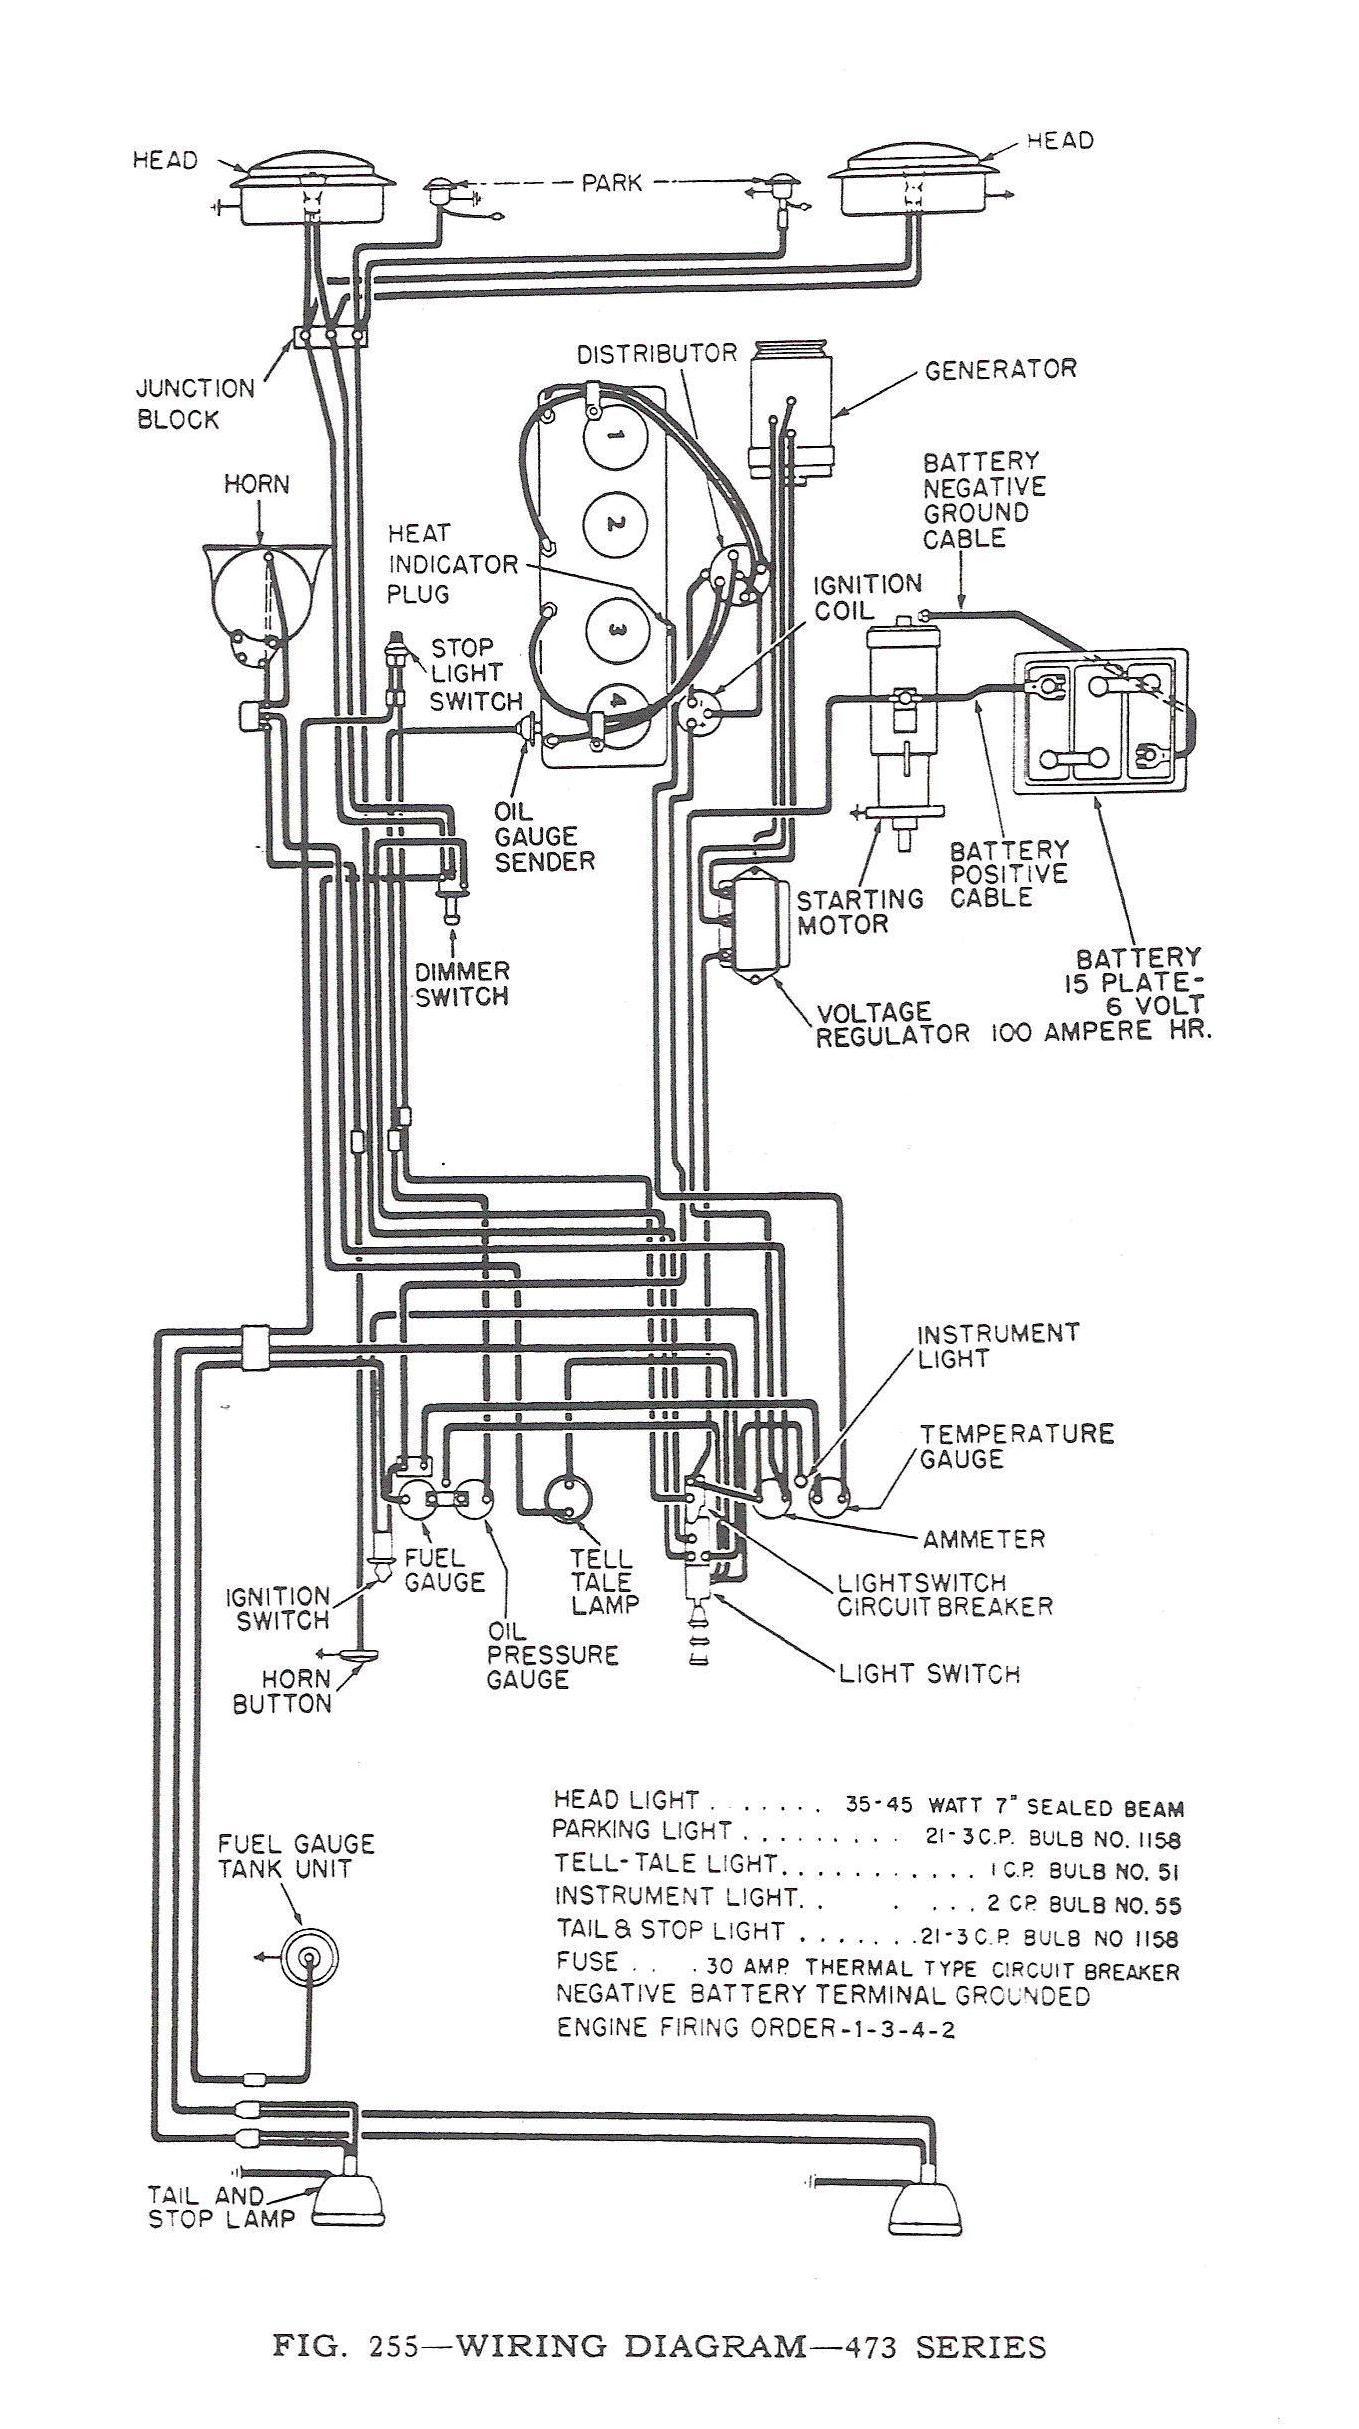 small resolution of 1952 jeep series 473 wiring diagrams google search